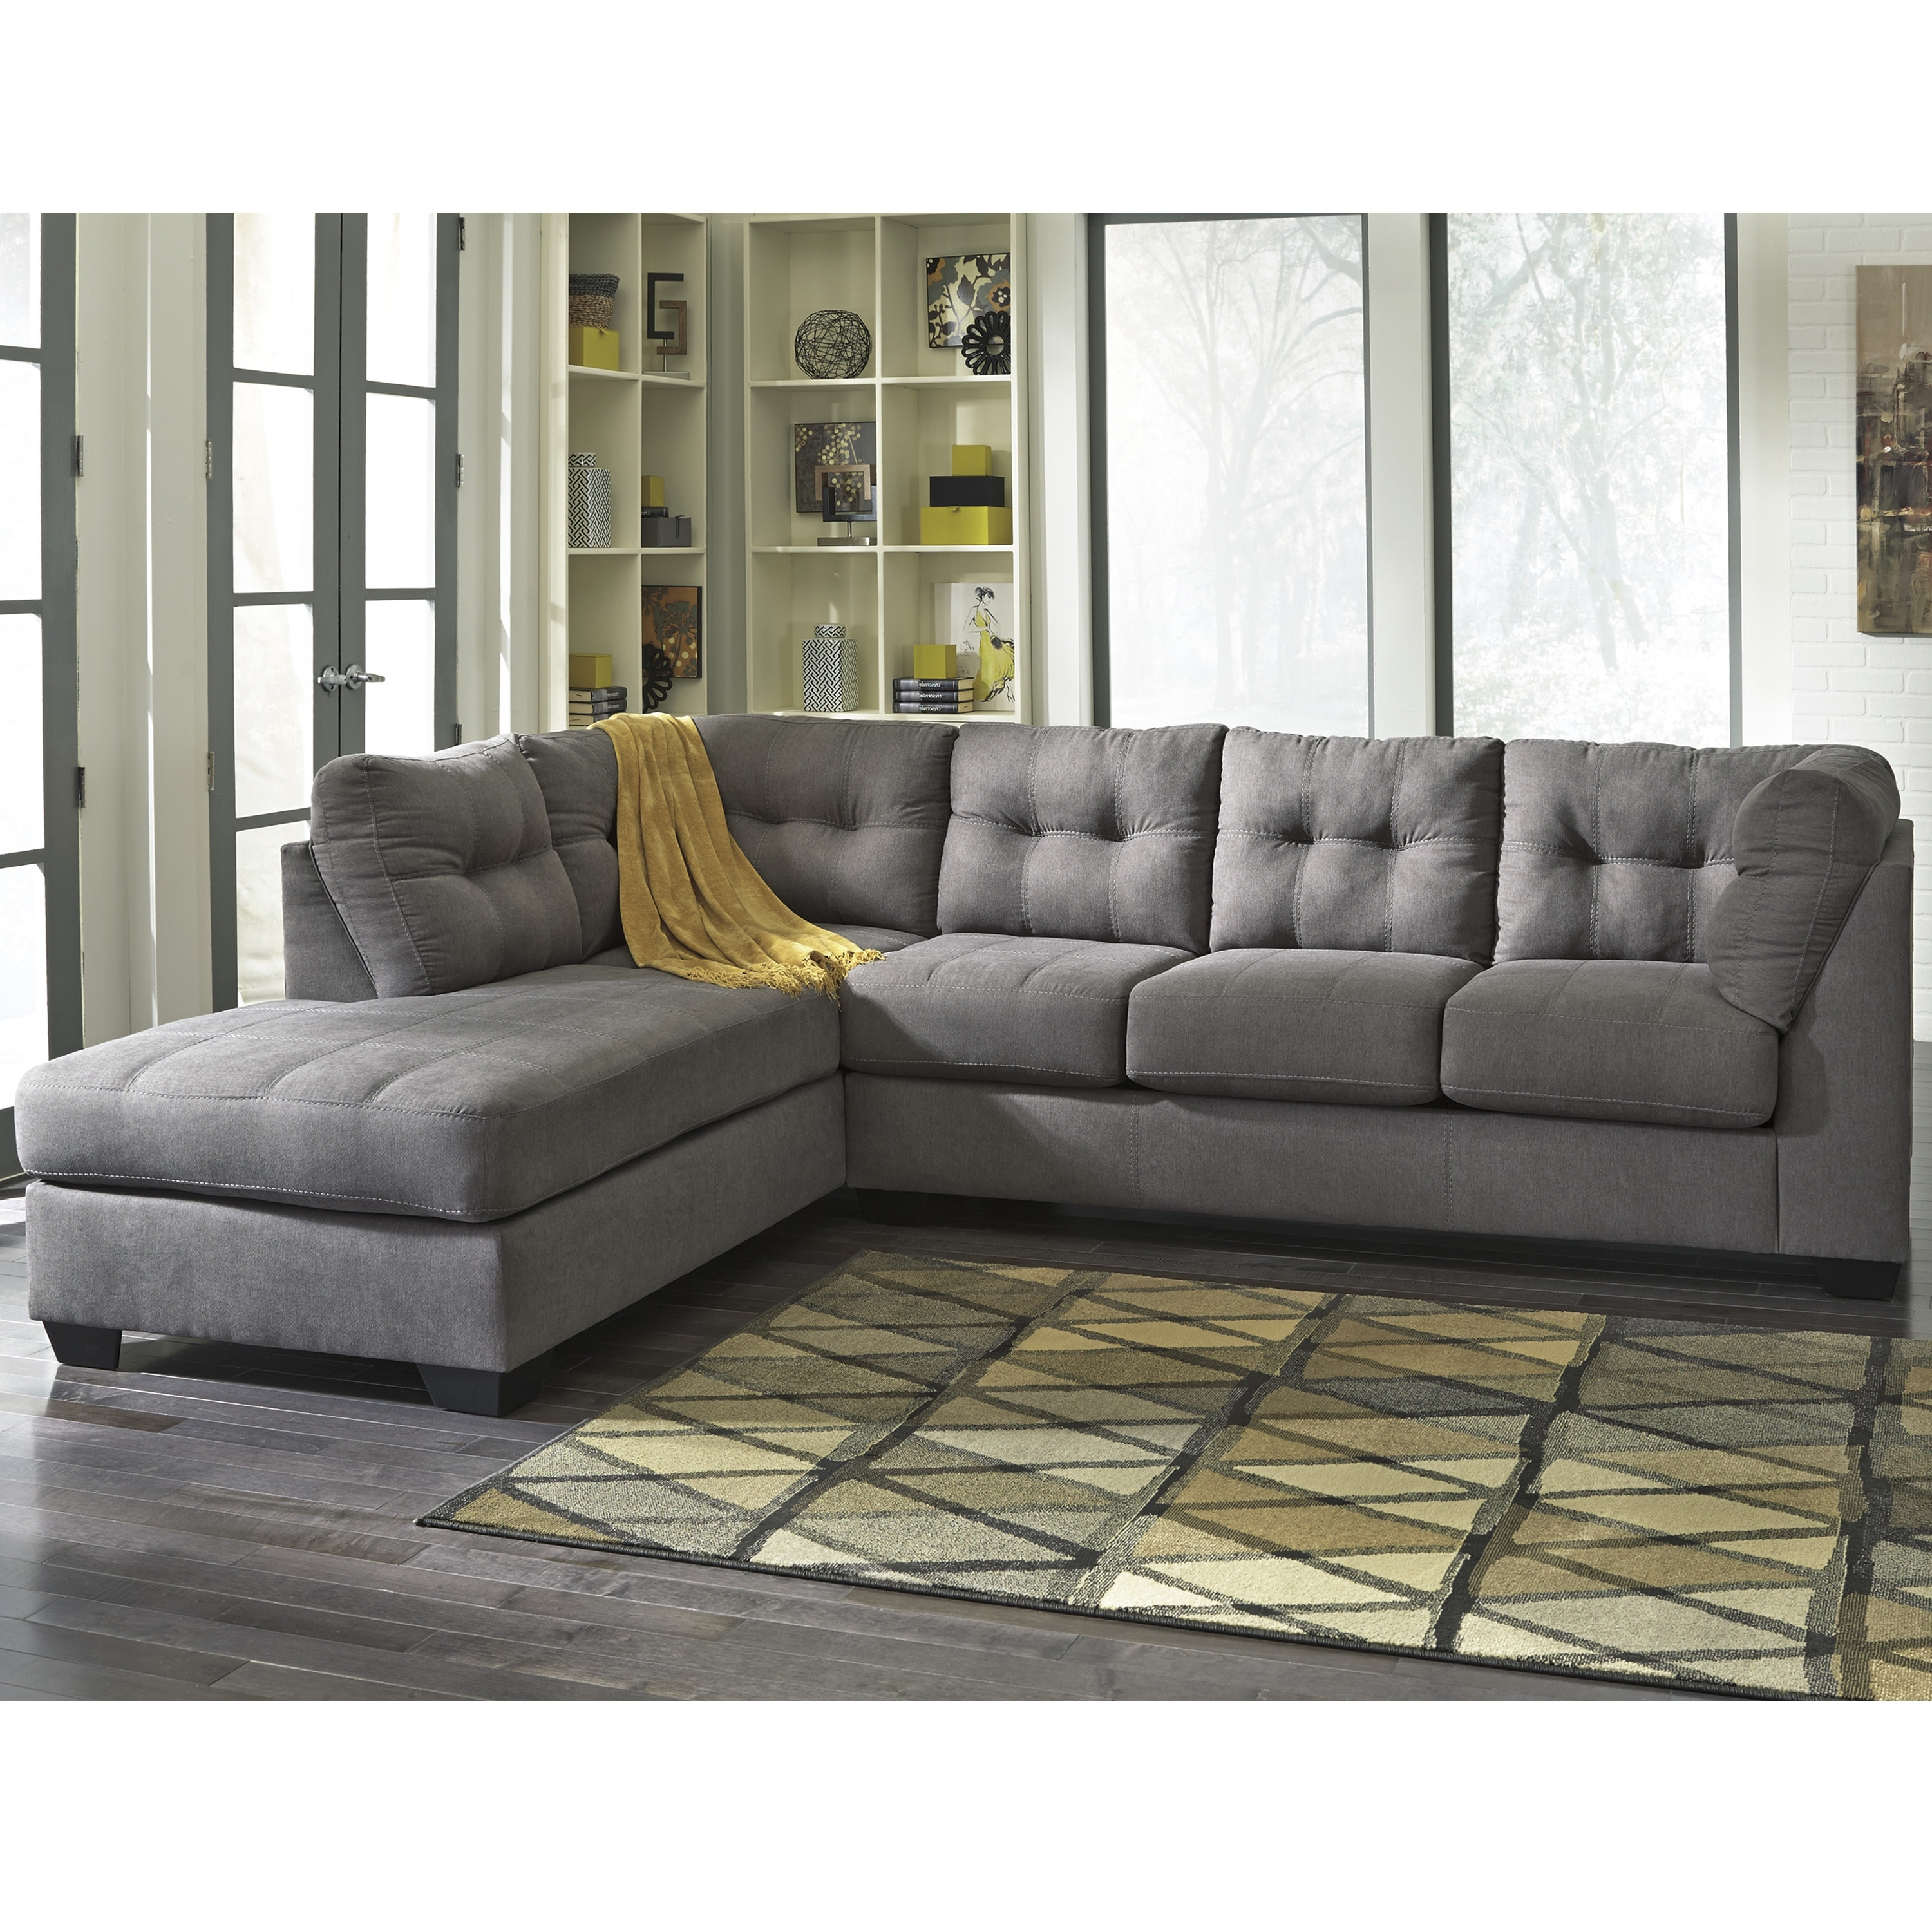 Sectional Sofa Portland Or | Functionalities In Portland Or Sectional Sofas (View 7 of 10)